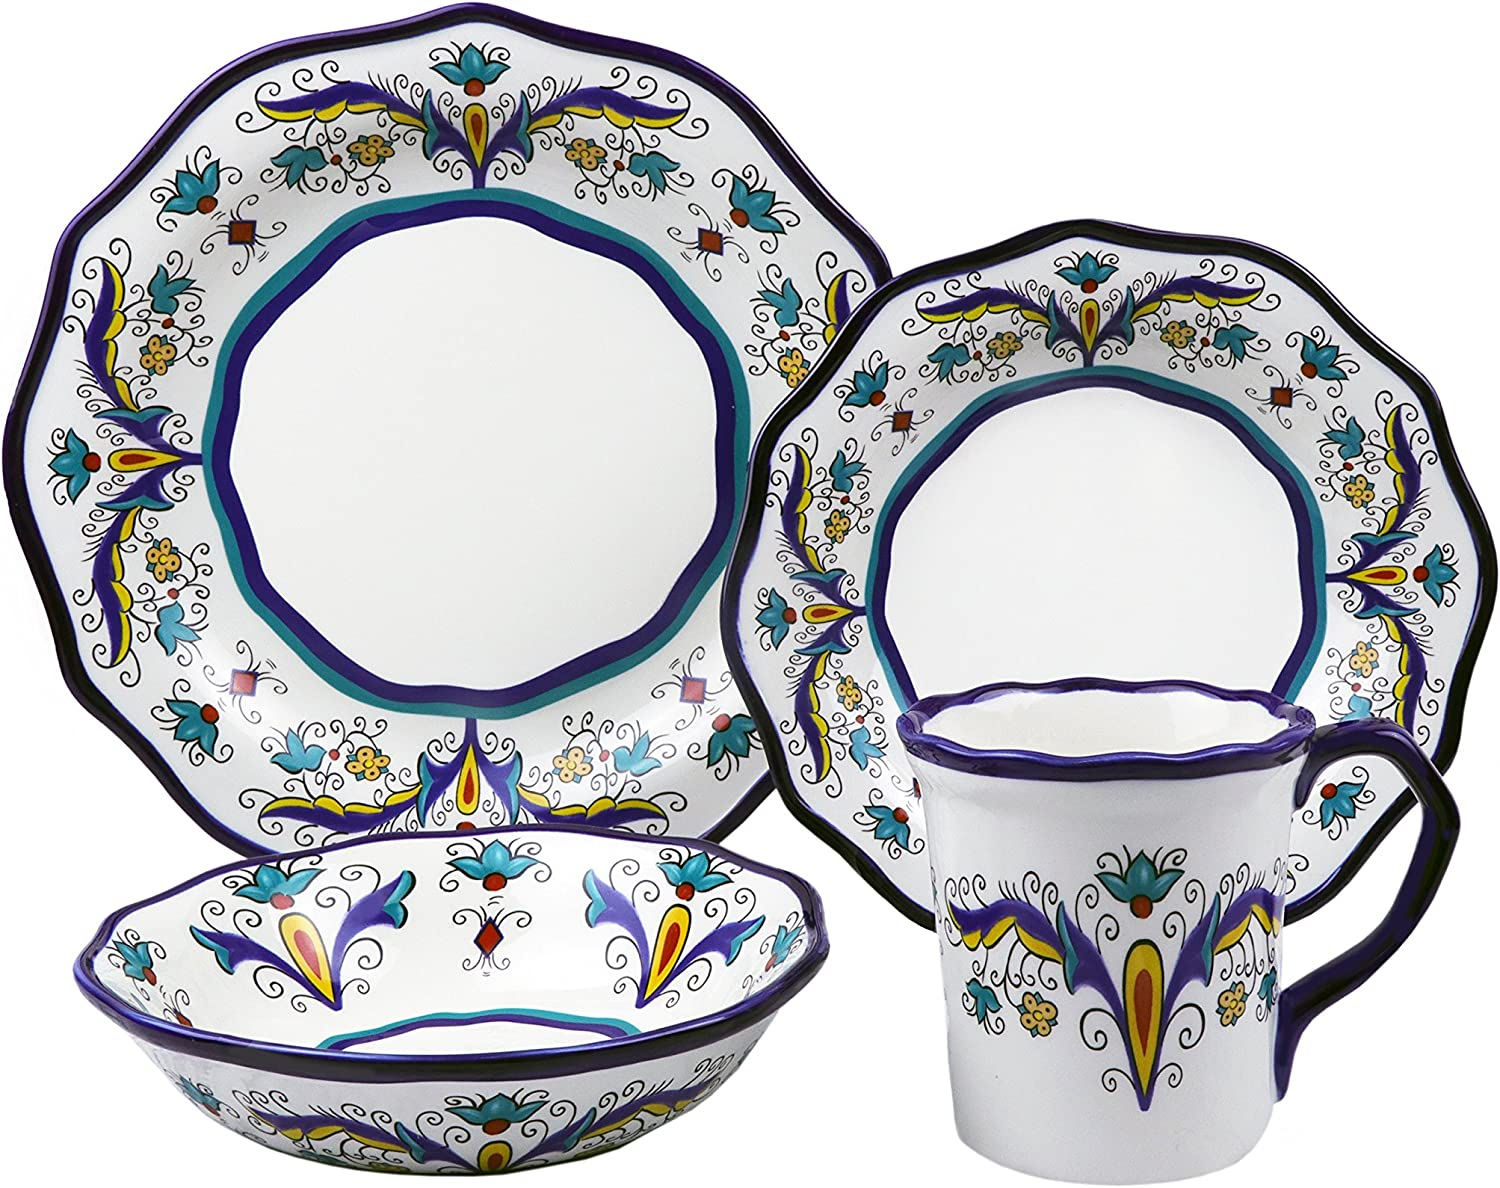 Lorren Home Trends LH506 Samana Collection 16 Piece Euro Style Wavy Edge Stoneware Set By Lorren Home, One Size, Multicolor